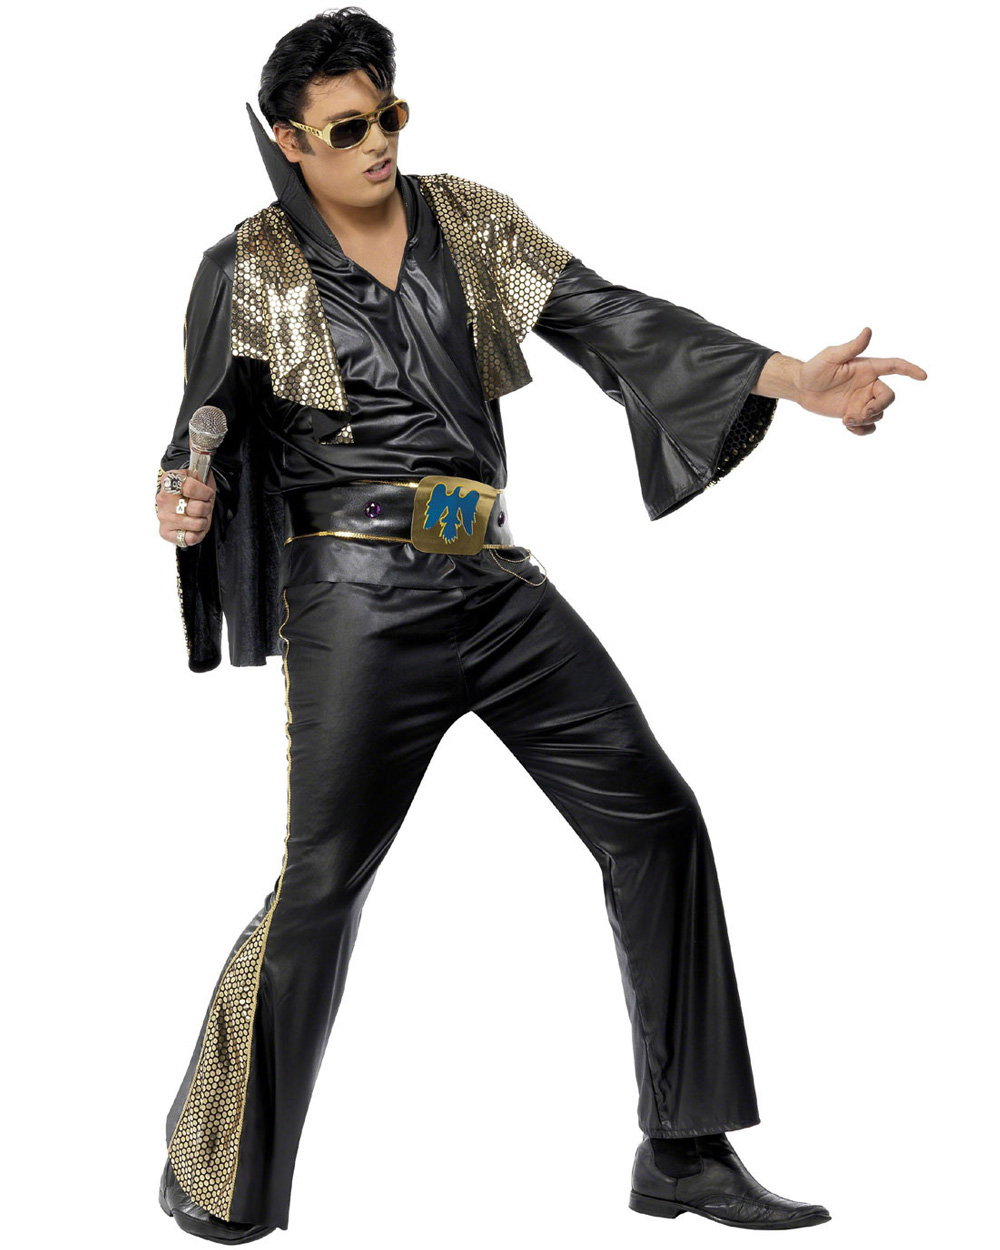 CL469 Elvis Presley Black Gold Licensed Costume Rock And